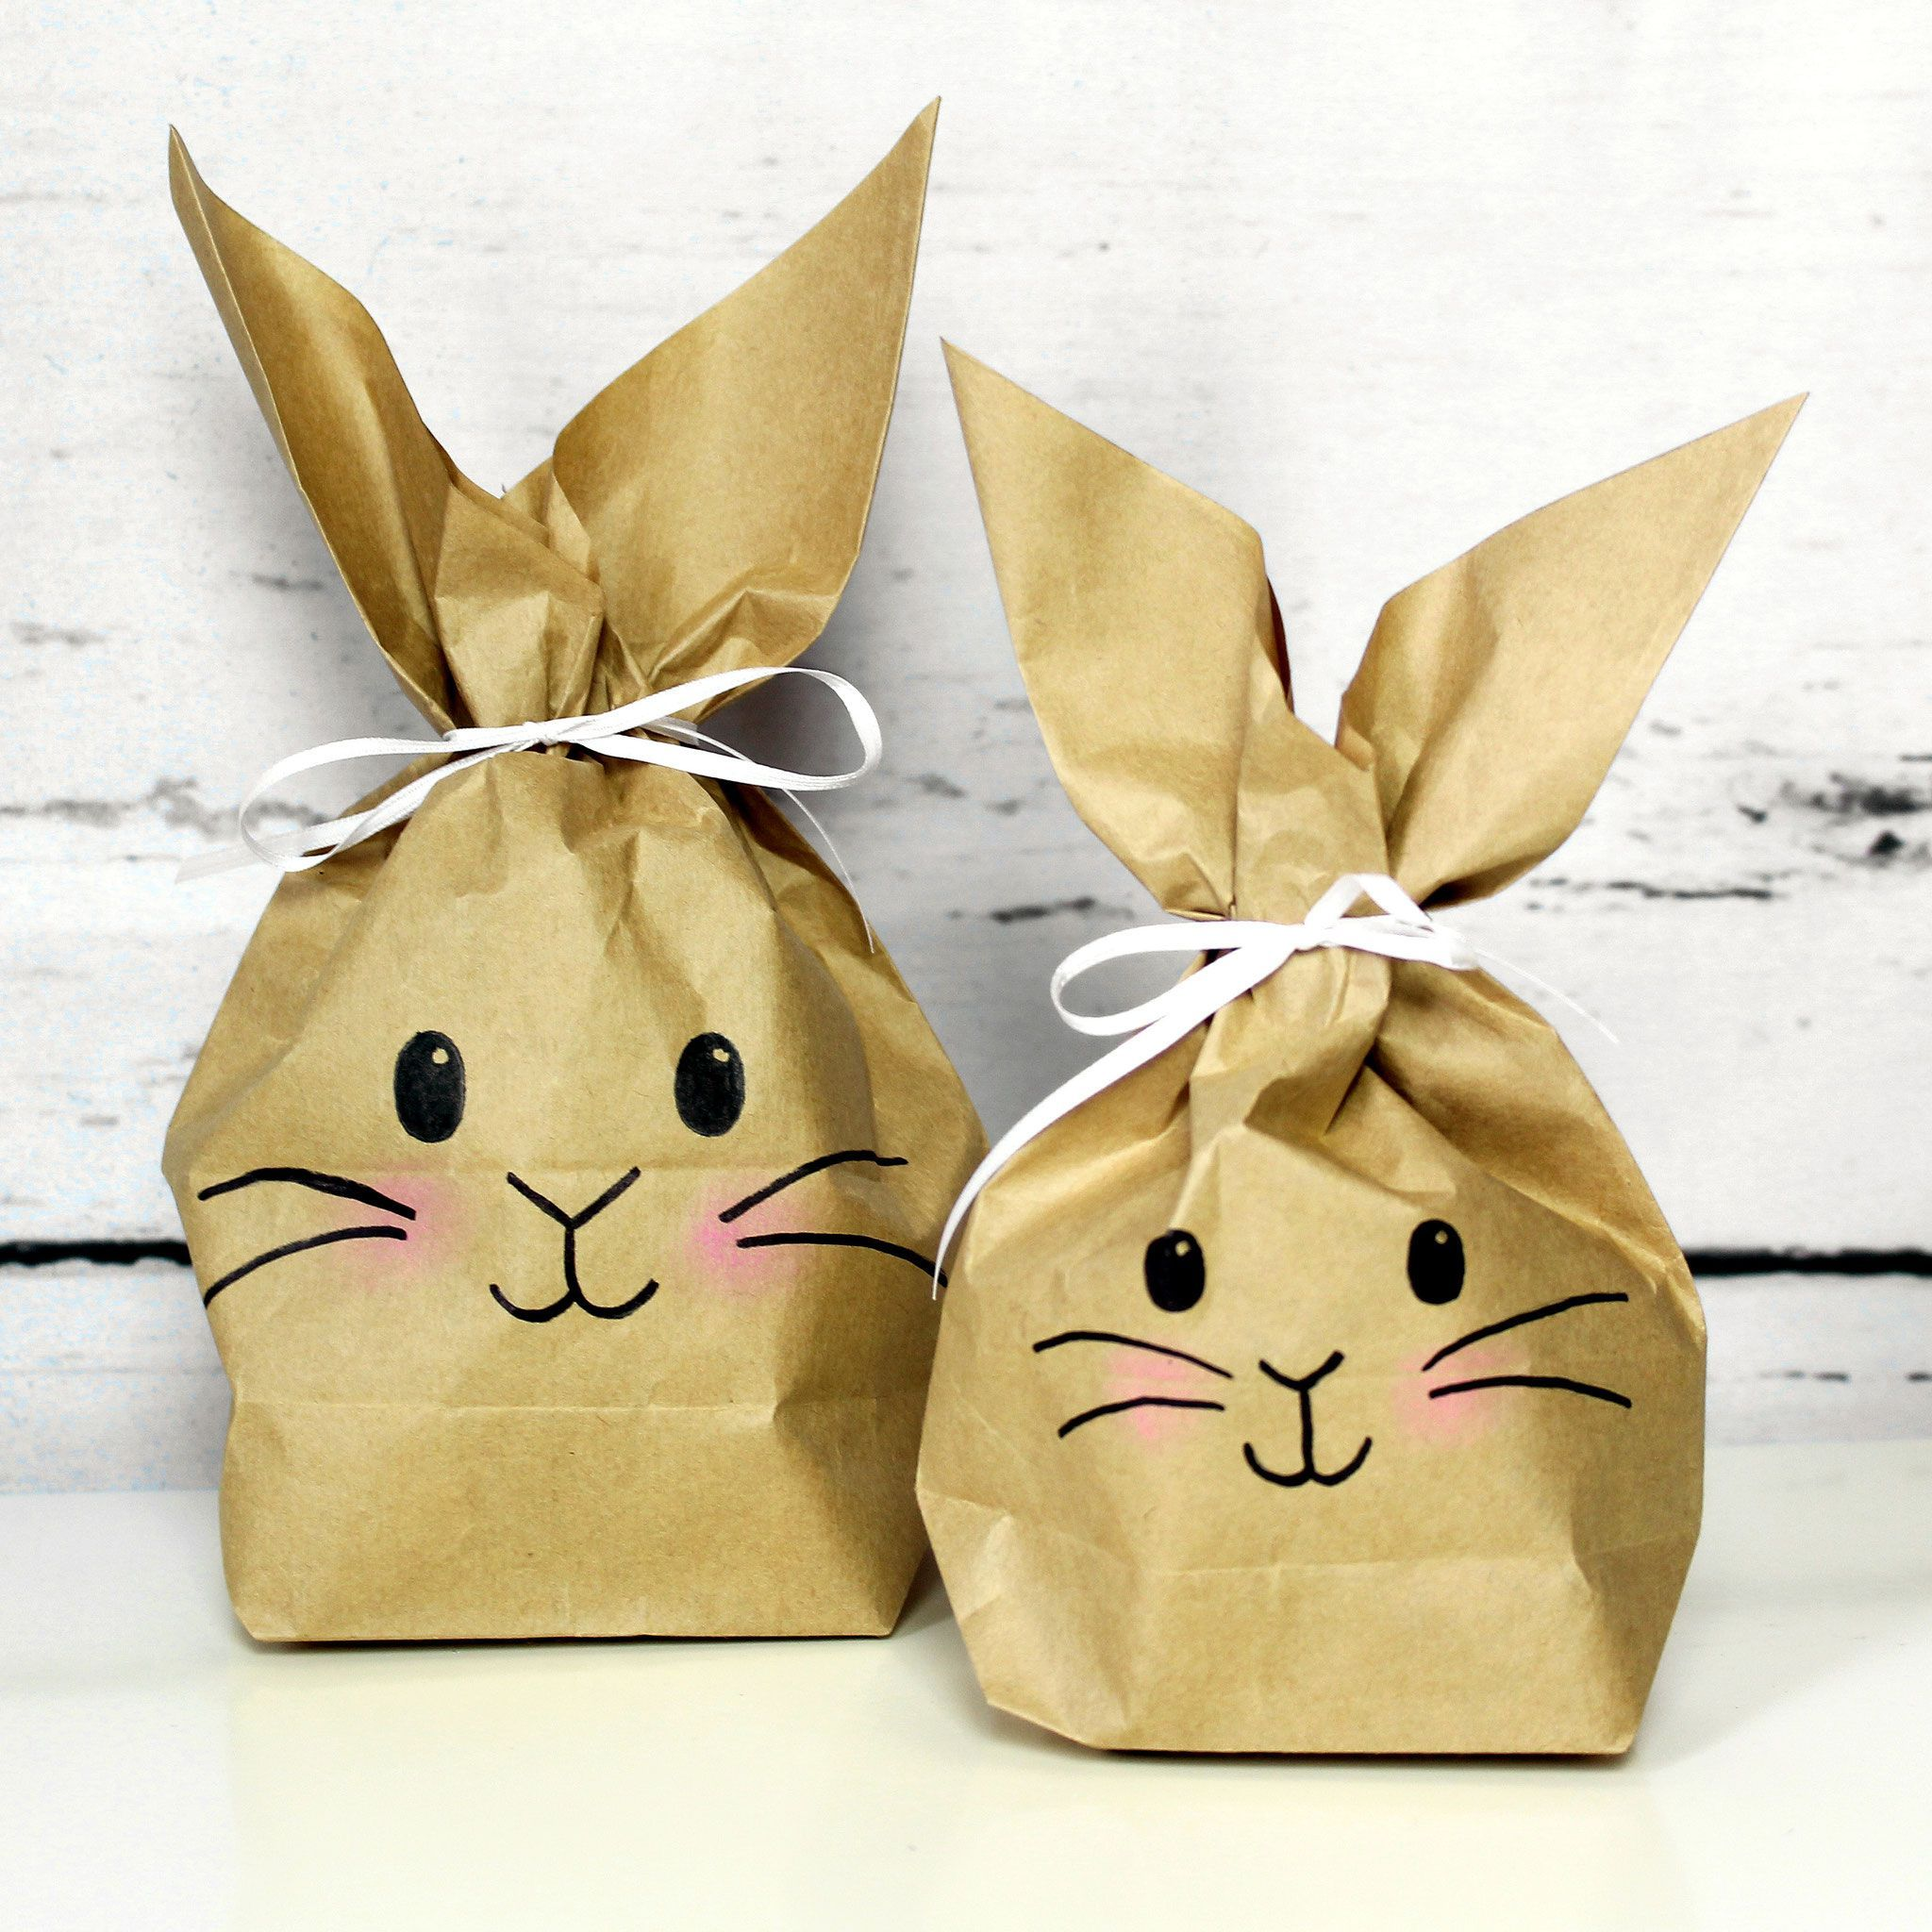 Paper bags, Easter, rabbits, Easter bunnies, gift packaging, handmade, handmade, DIY -  Easter Bunnies | Gift bags | Gift packaging | Easter | Easter bags | Paper bags  - #bags #boyfriendgifts #bunnies #DIY #Easter #gift #giftsforhim #greatgifts #Handmade #lovegifts #packaging #Paper #rabbits